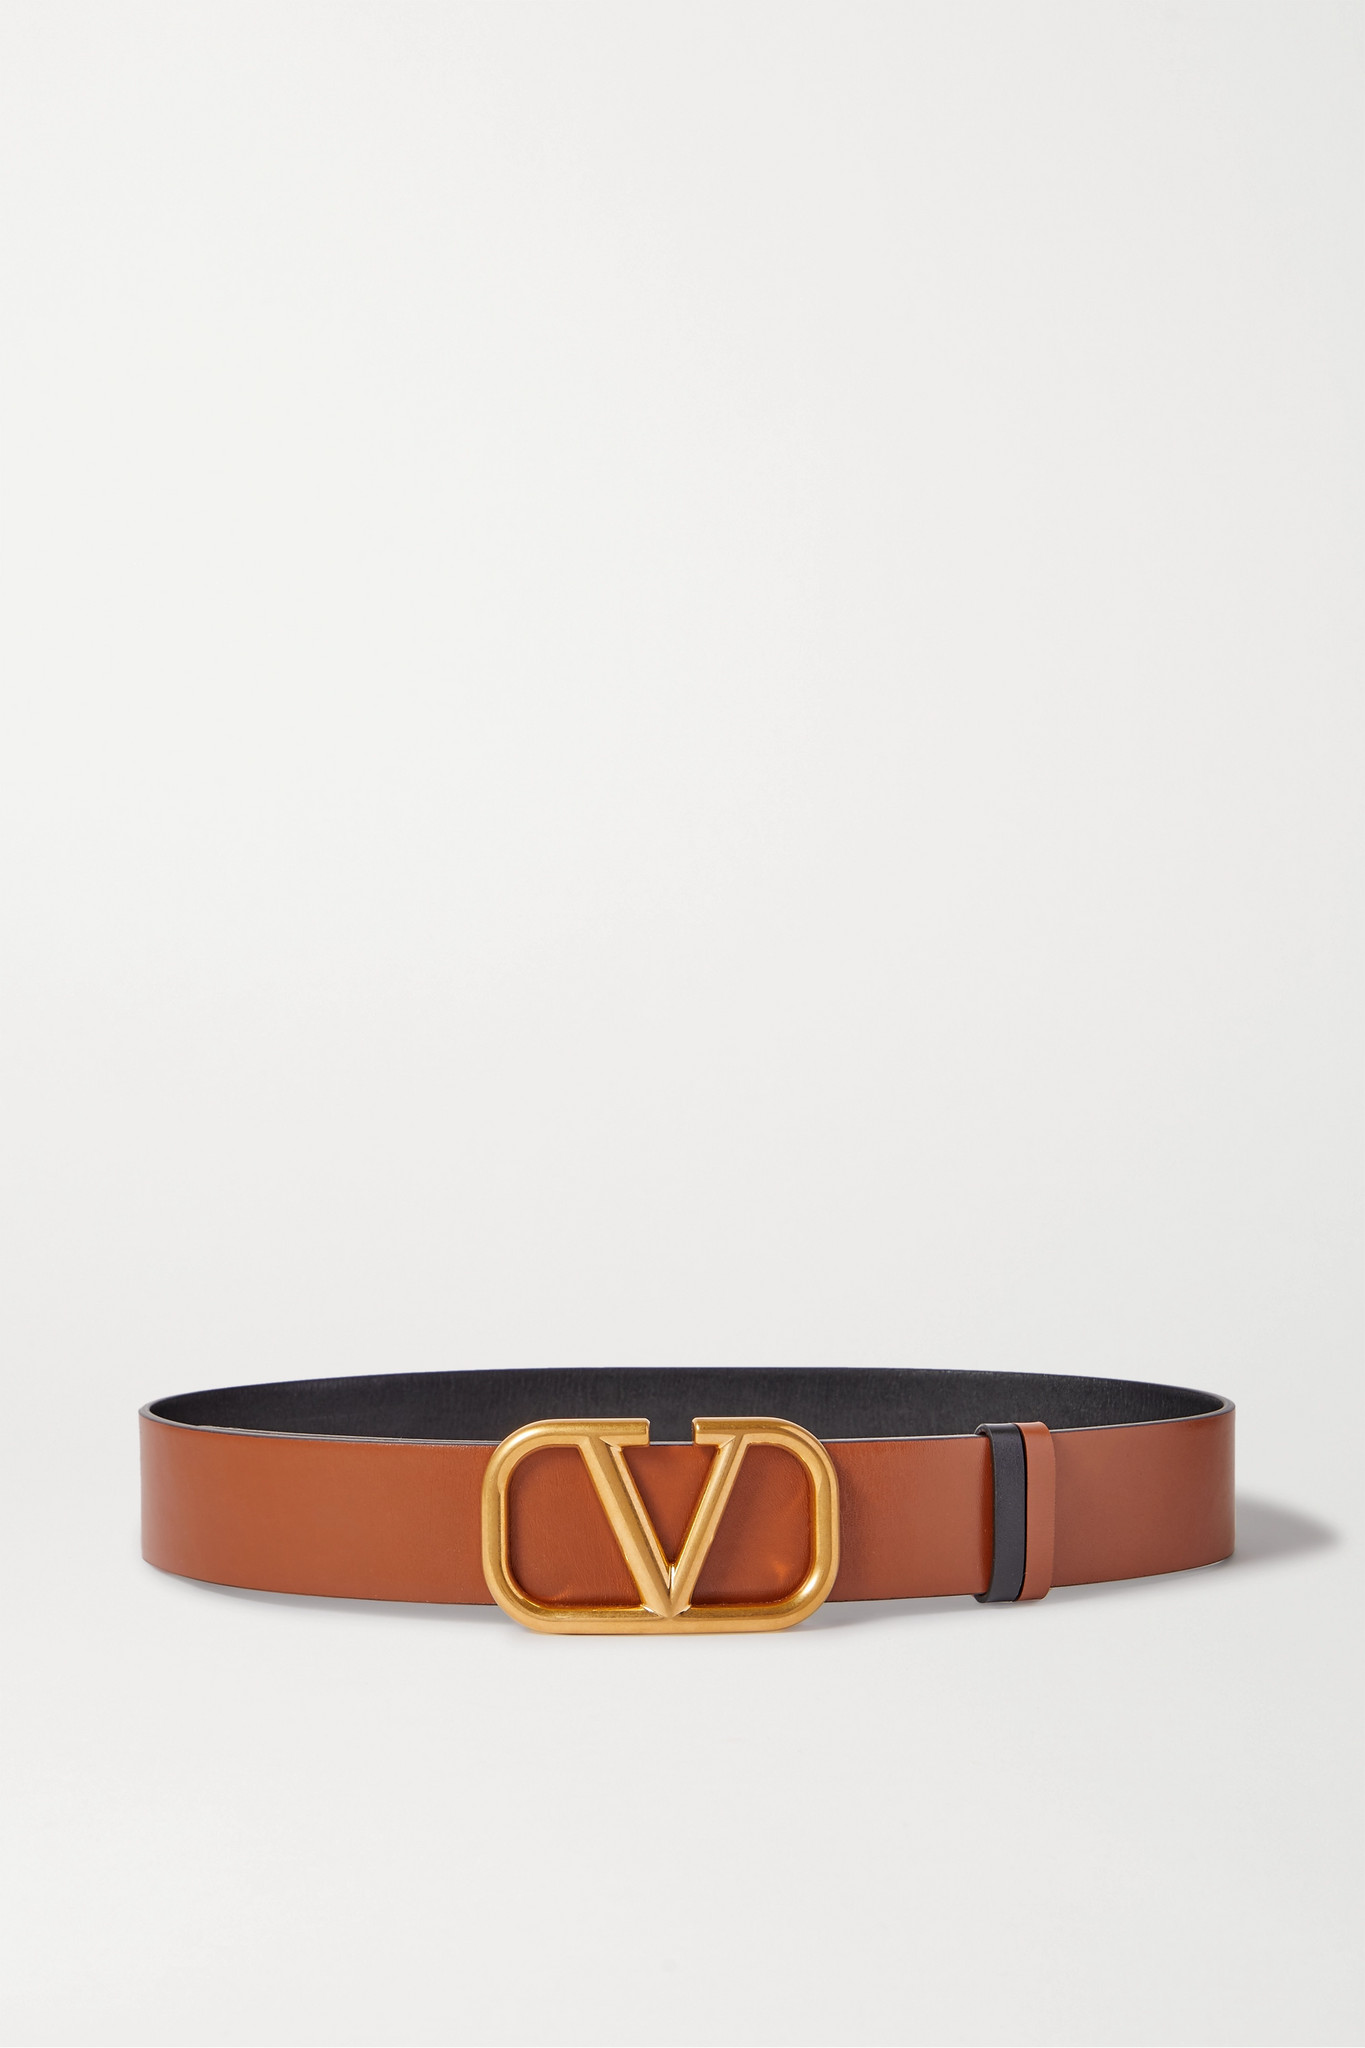 VALENTINO - Valentino Garavani Vlogo Reversible Leather Belt - Brown - 80